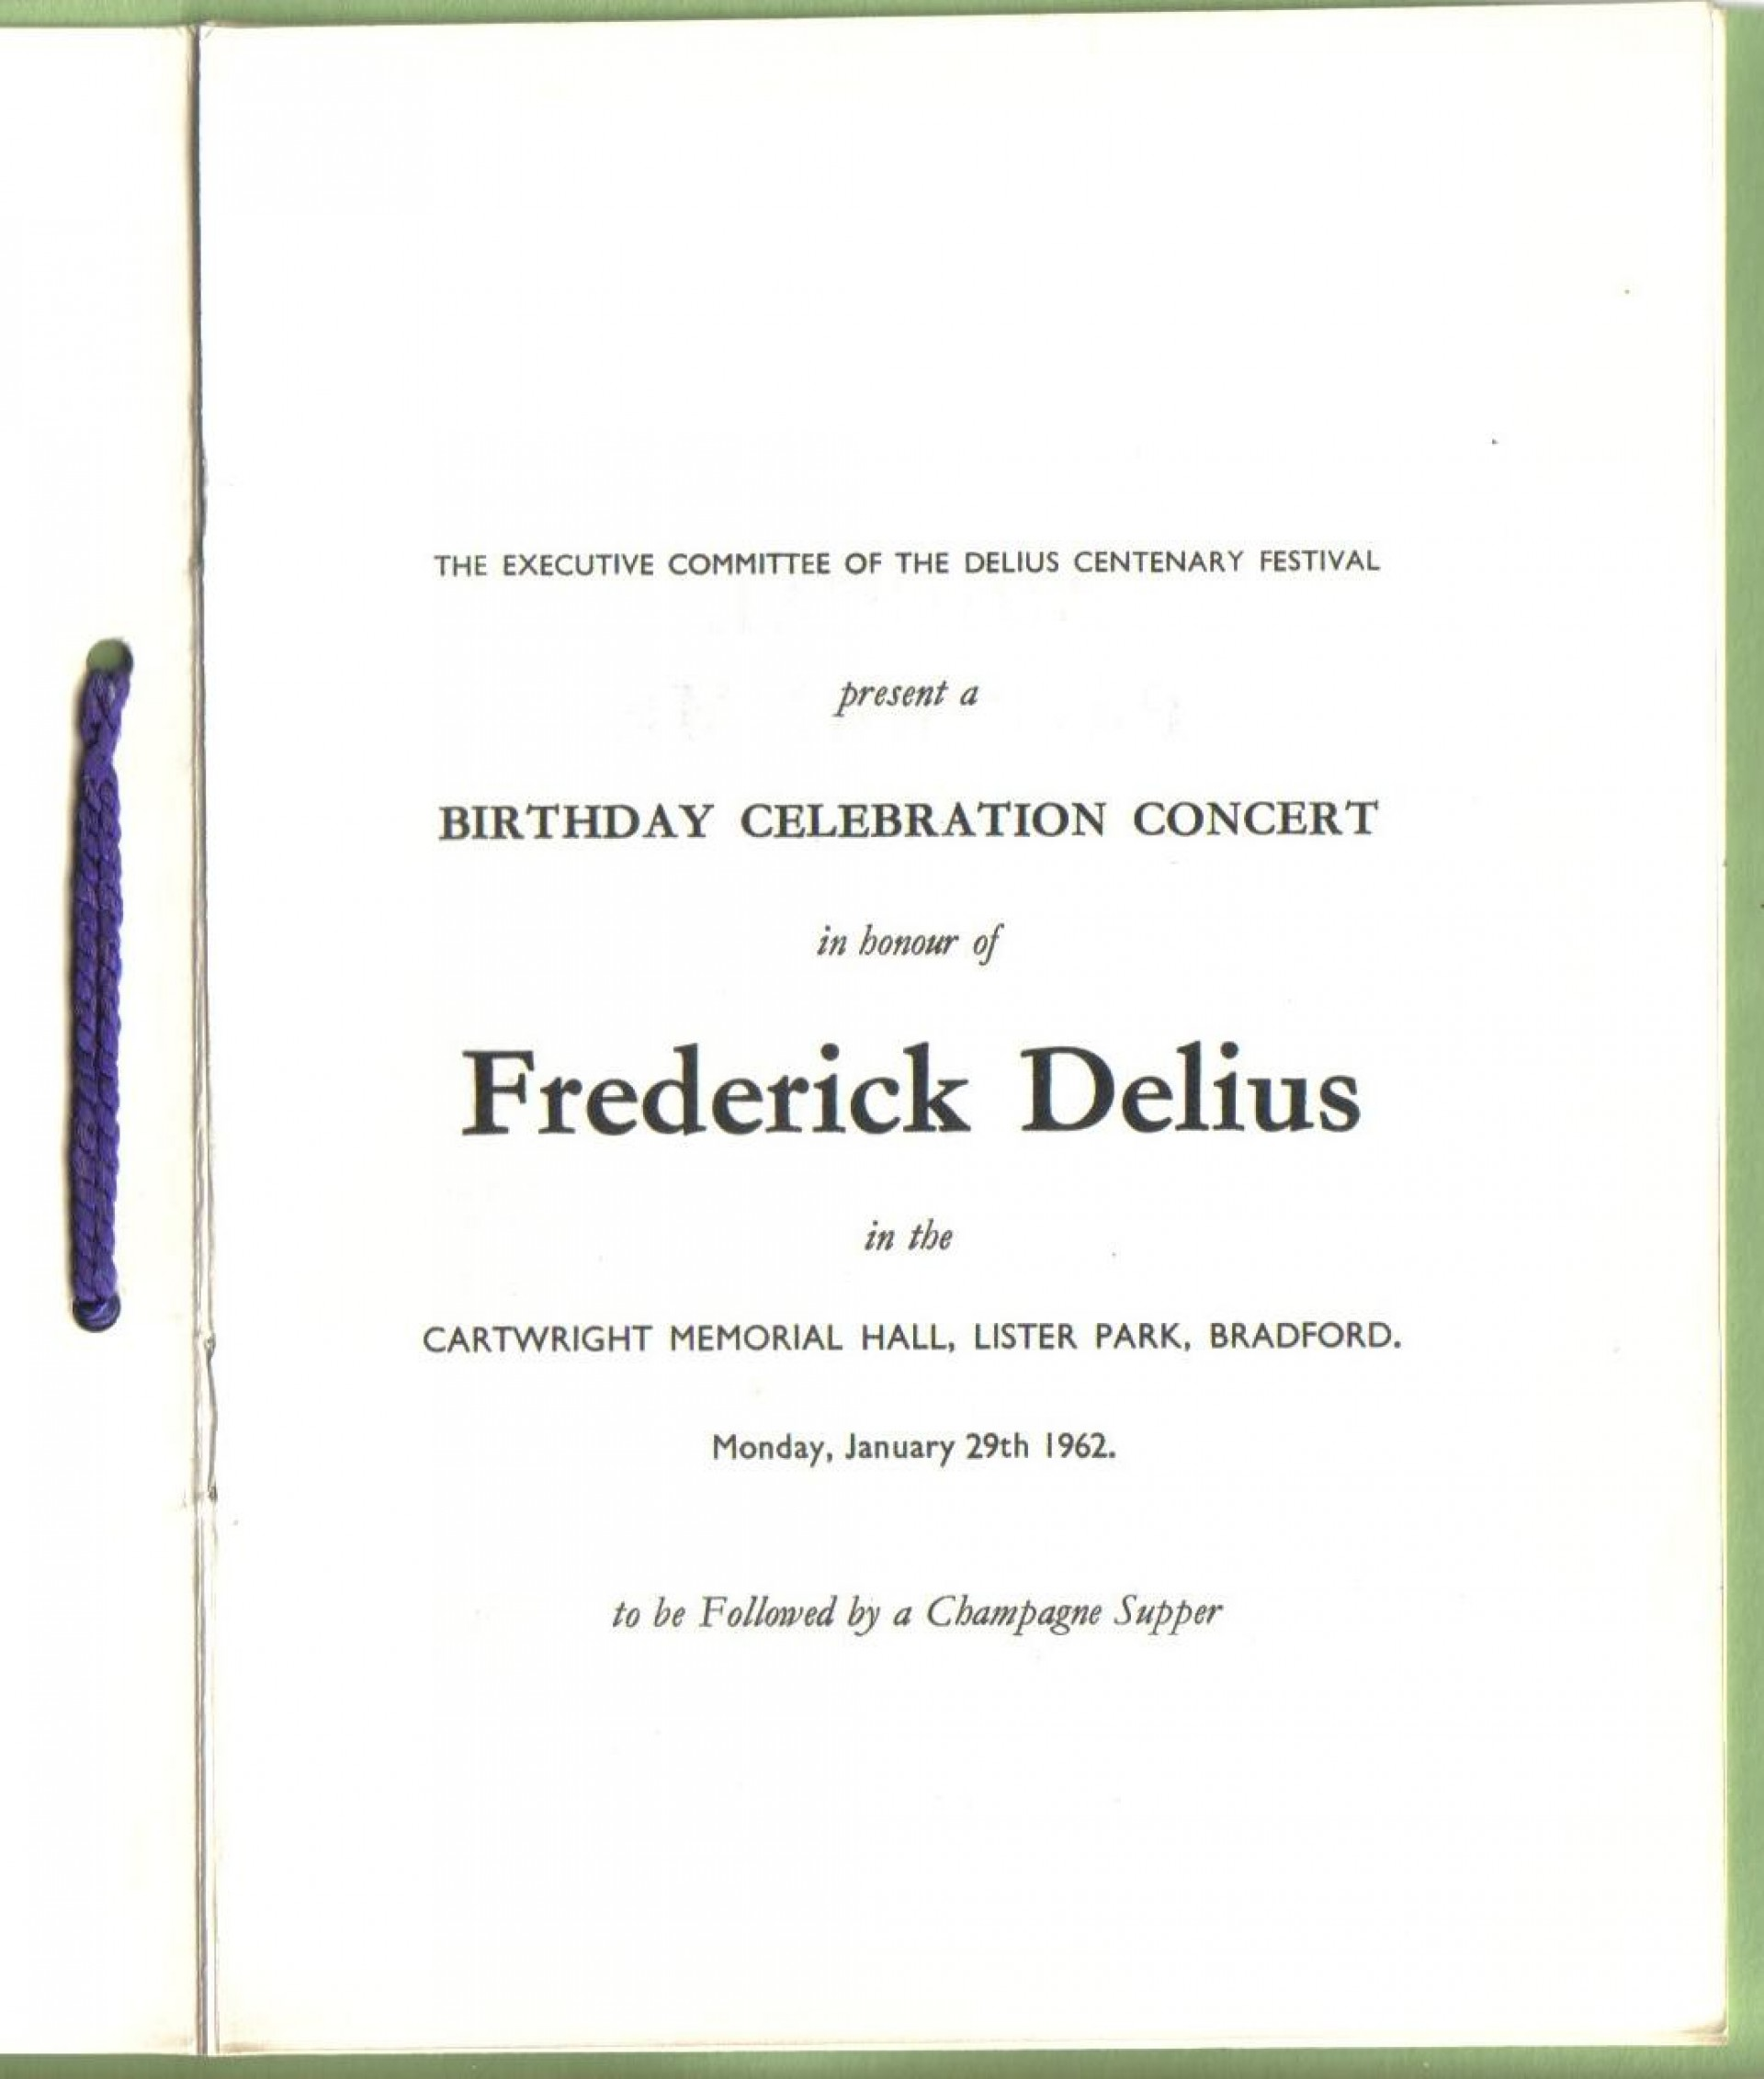 014 Cover Sheet For Research Paper Mla Delius Du Pre Title Marvelous A Page Example 1920